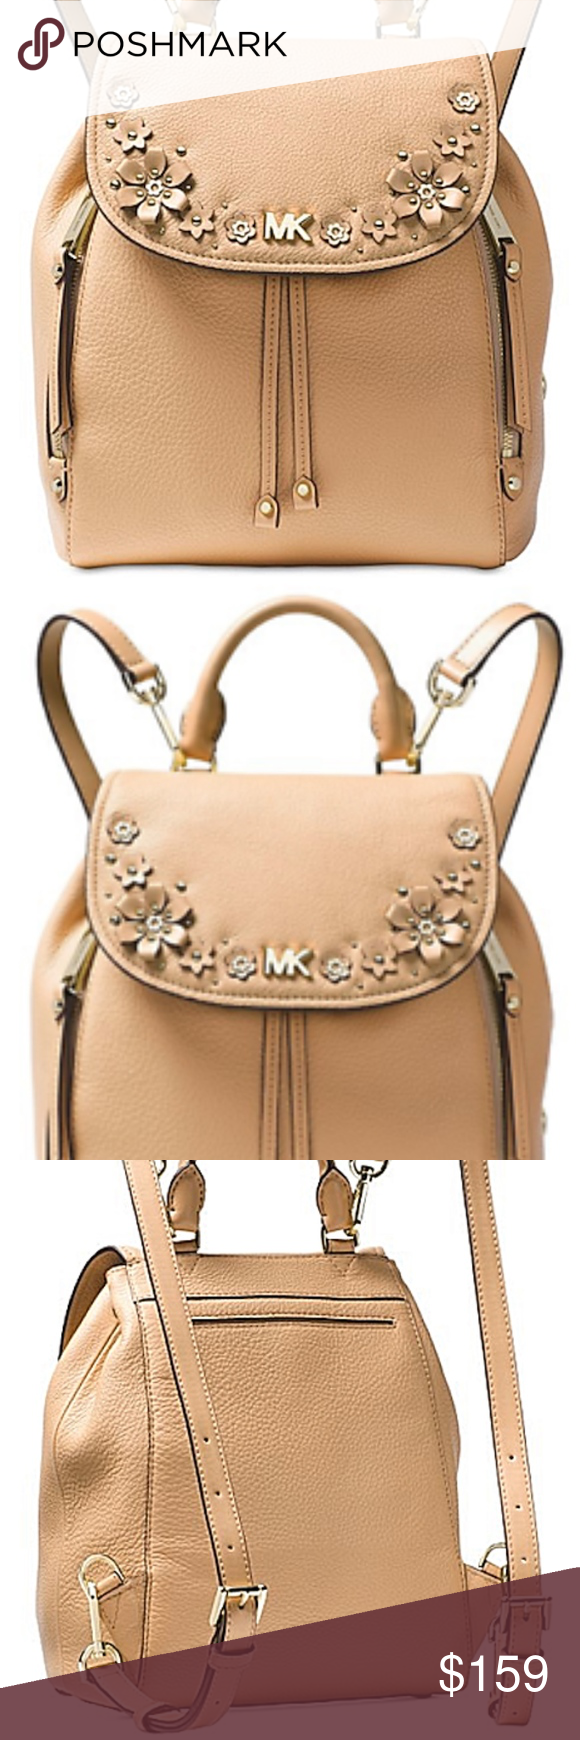 3a2adf970696 Michael Kors Evie S Flower Garden Butternut/Gold Michael Kors Evie Small  Flower Garden Leather